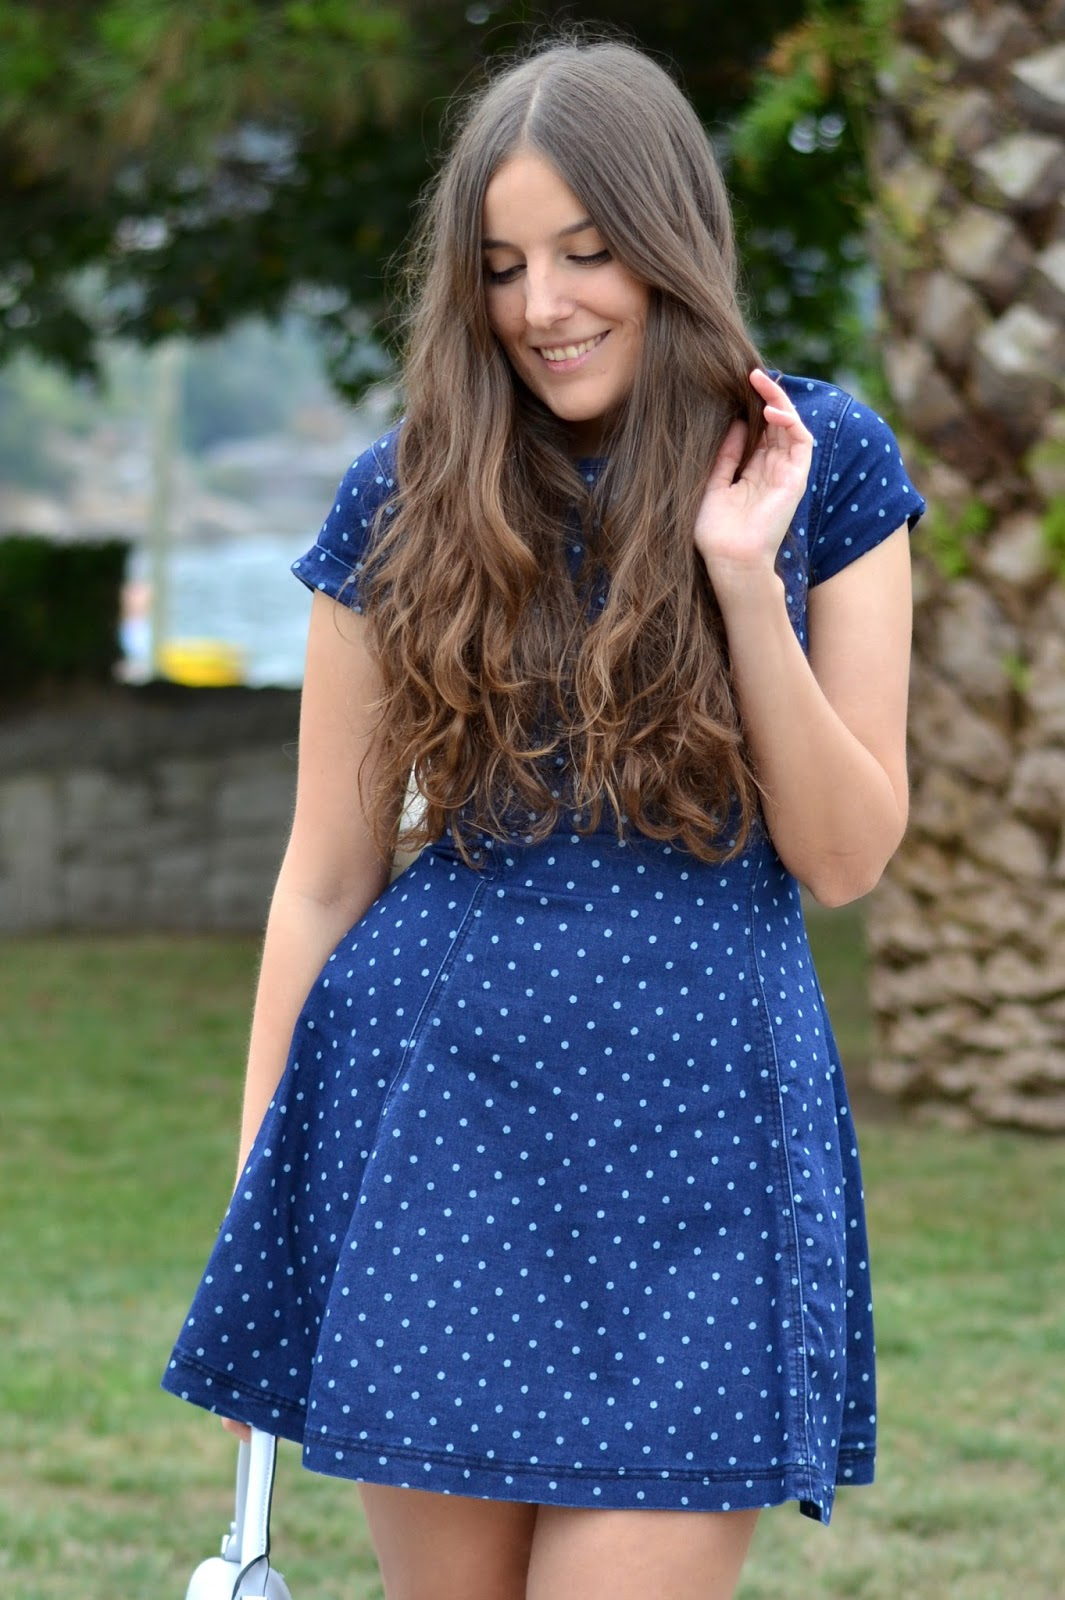 polka dots denim dress chicfy